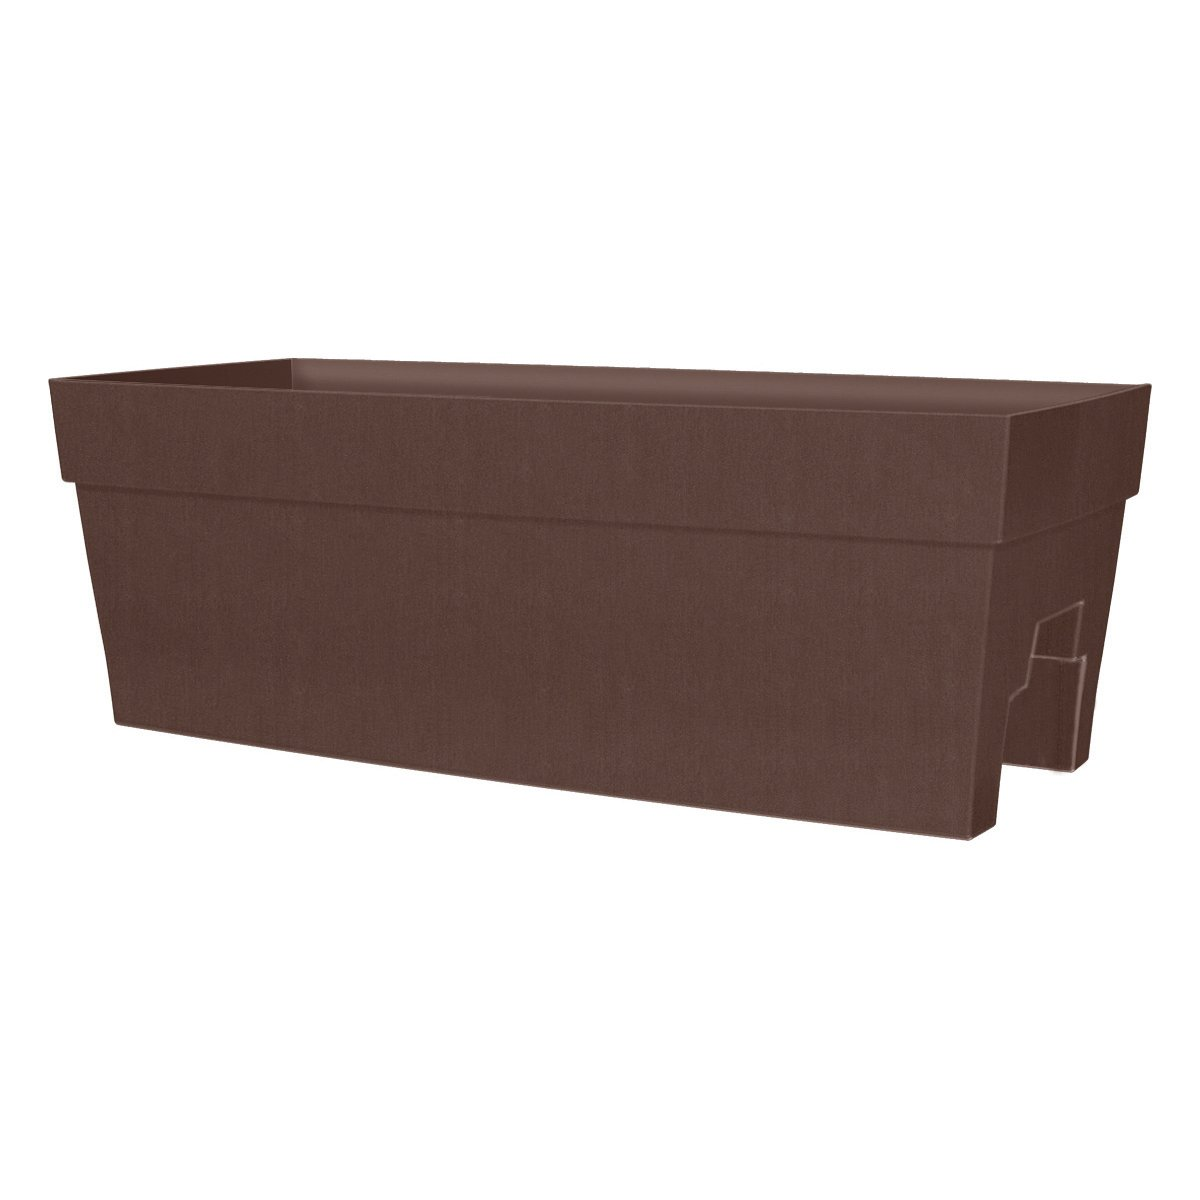 Brown DCN Plastic 3527-11 Harmony Rail Planter Discontinued by Manufacturer